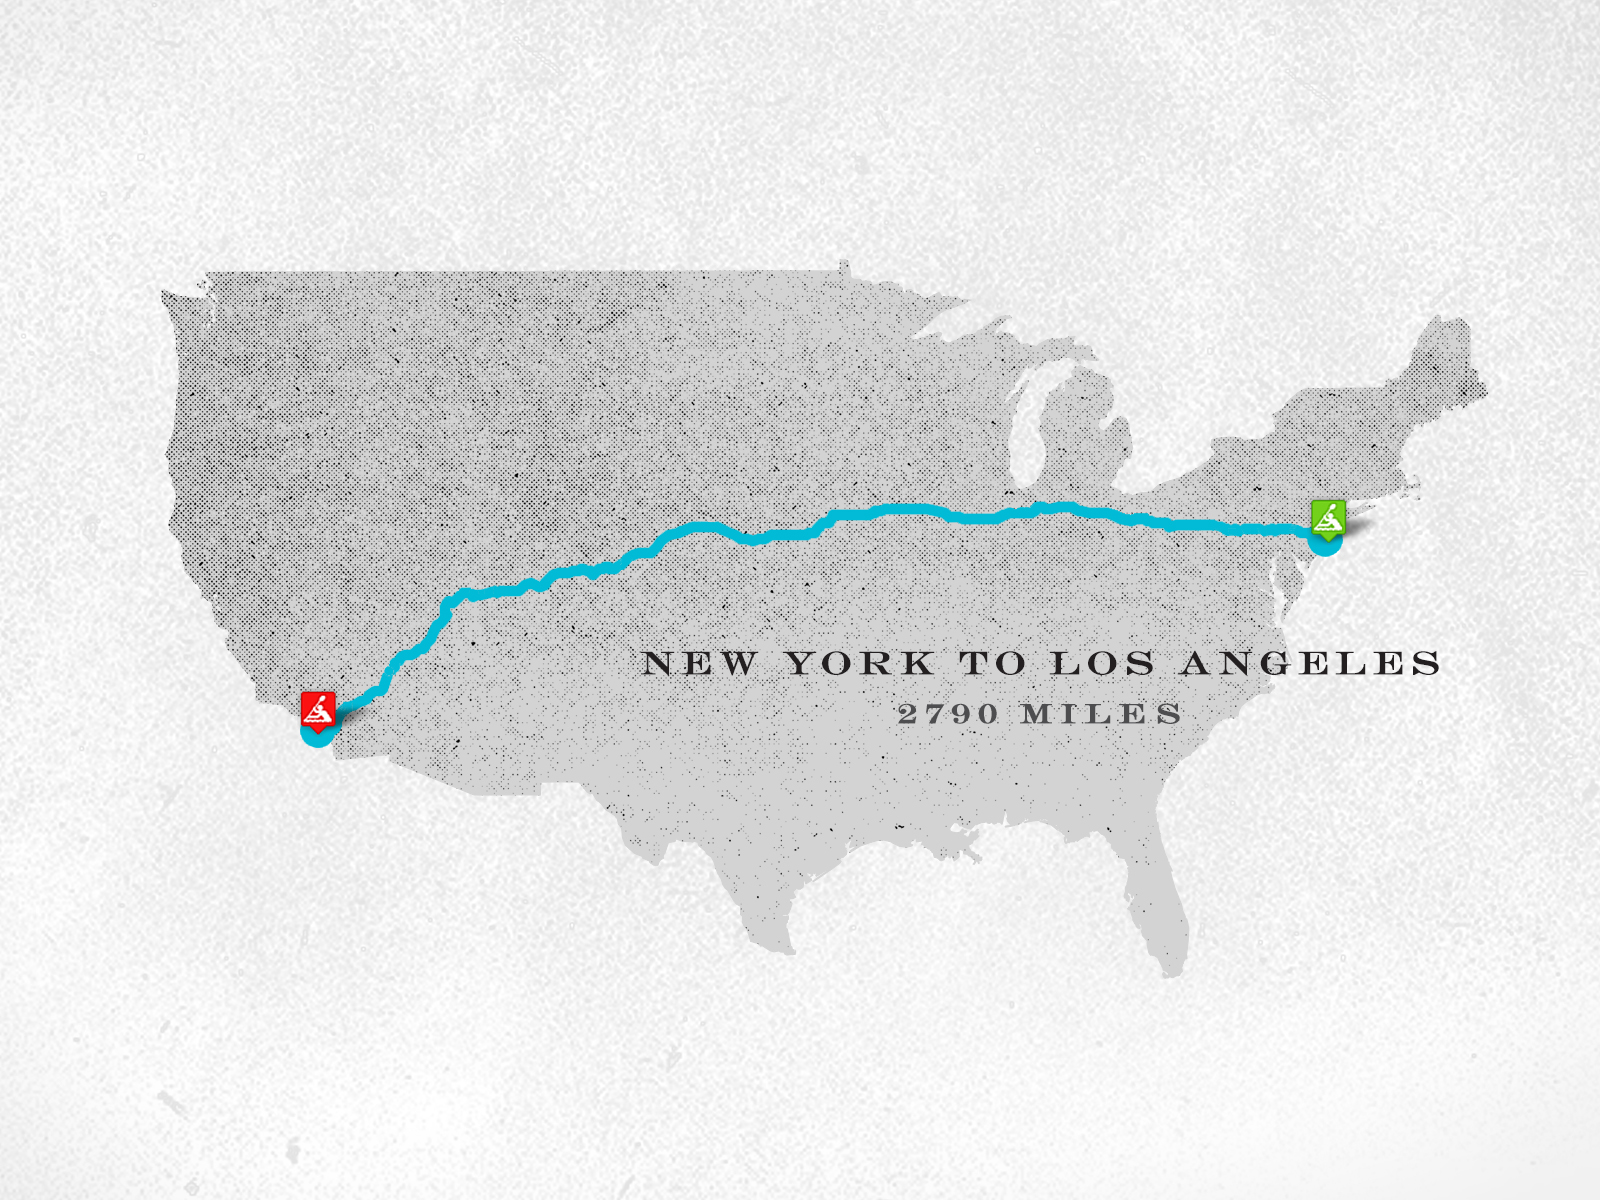 Miles Paddled New York to Los Angeles